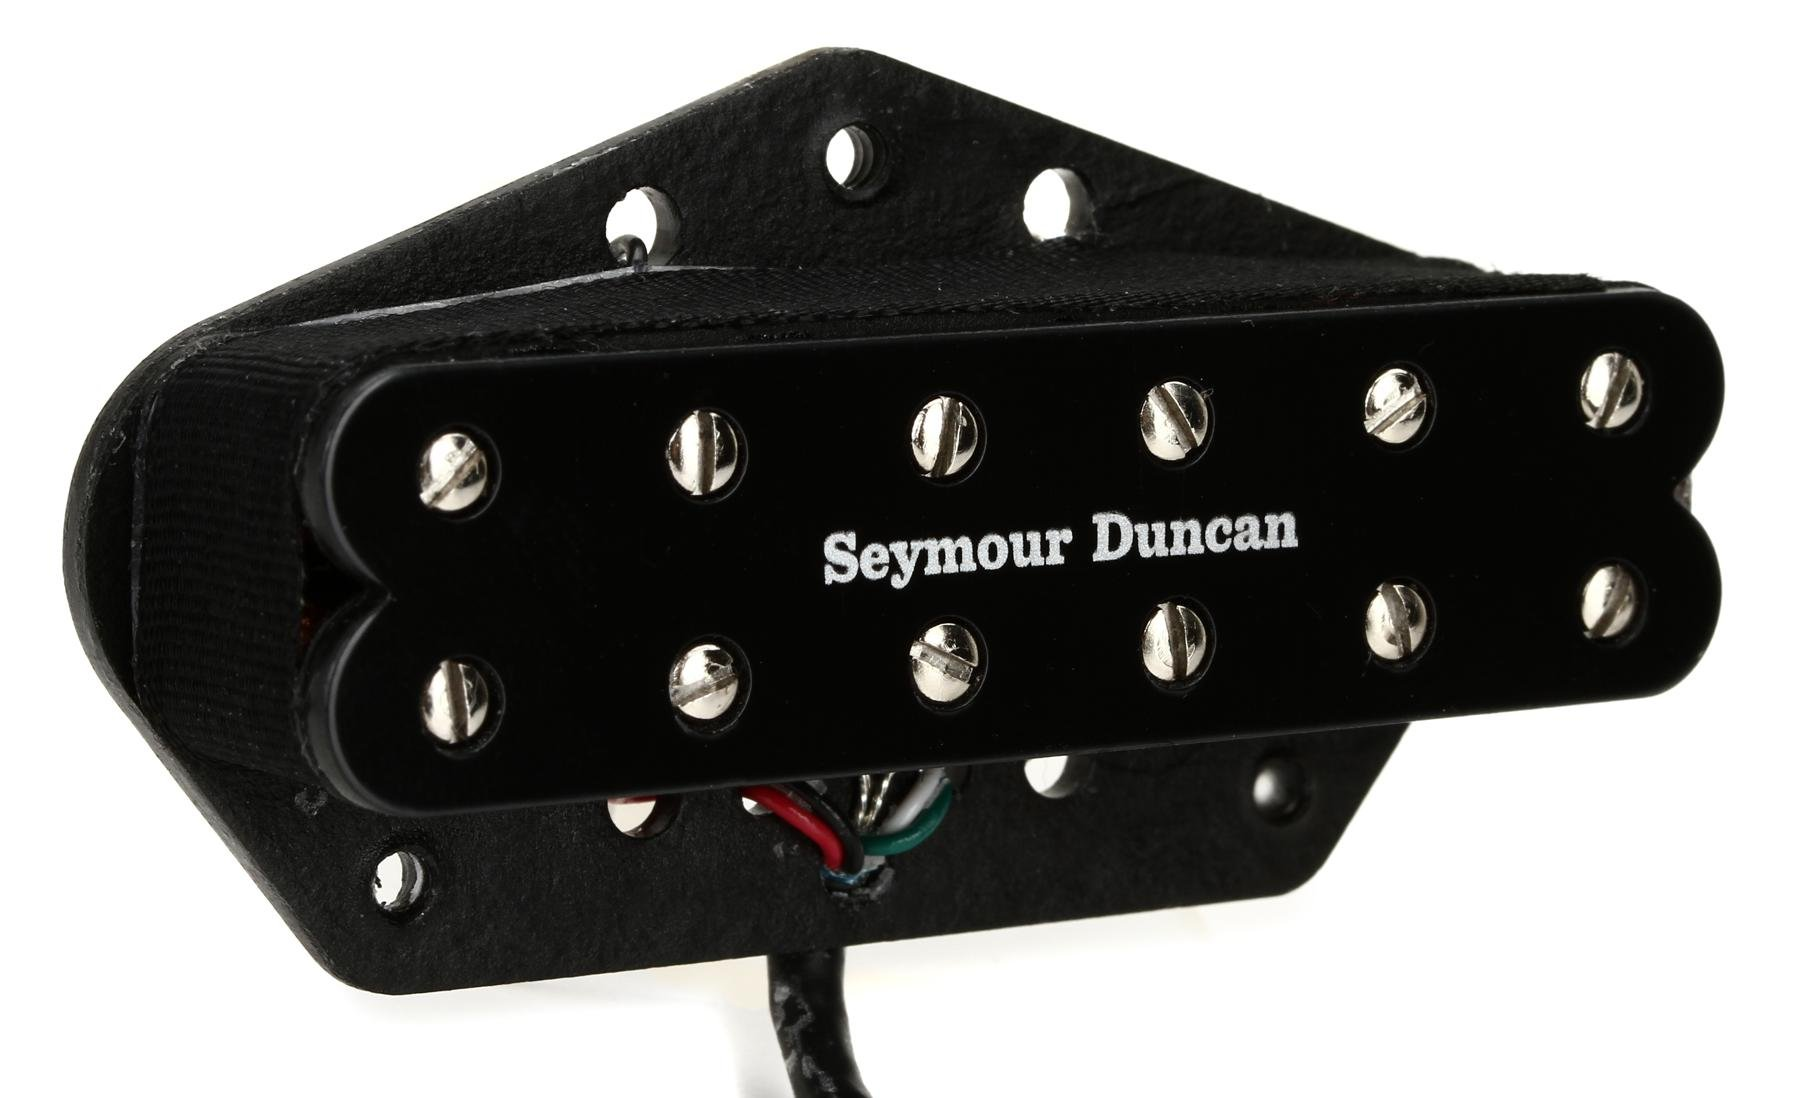 Seymour Duncan St59 1 Little 59 Humbucker Tele Pickup Black Telecaster Wiring Diagram Stack Bridge Image